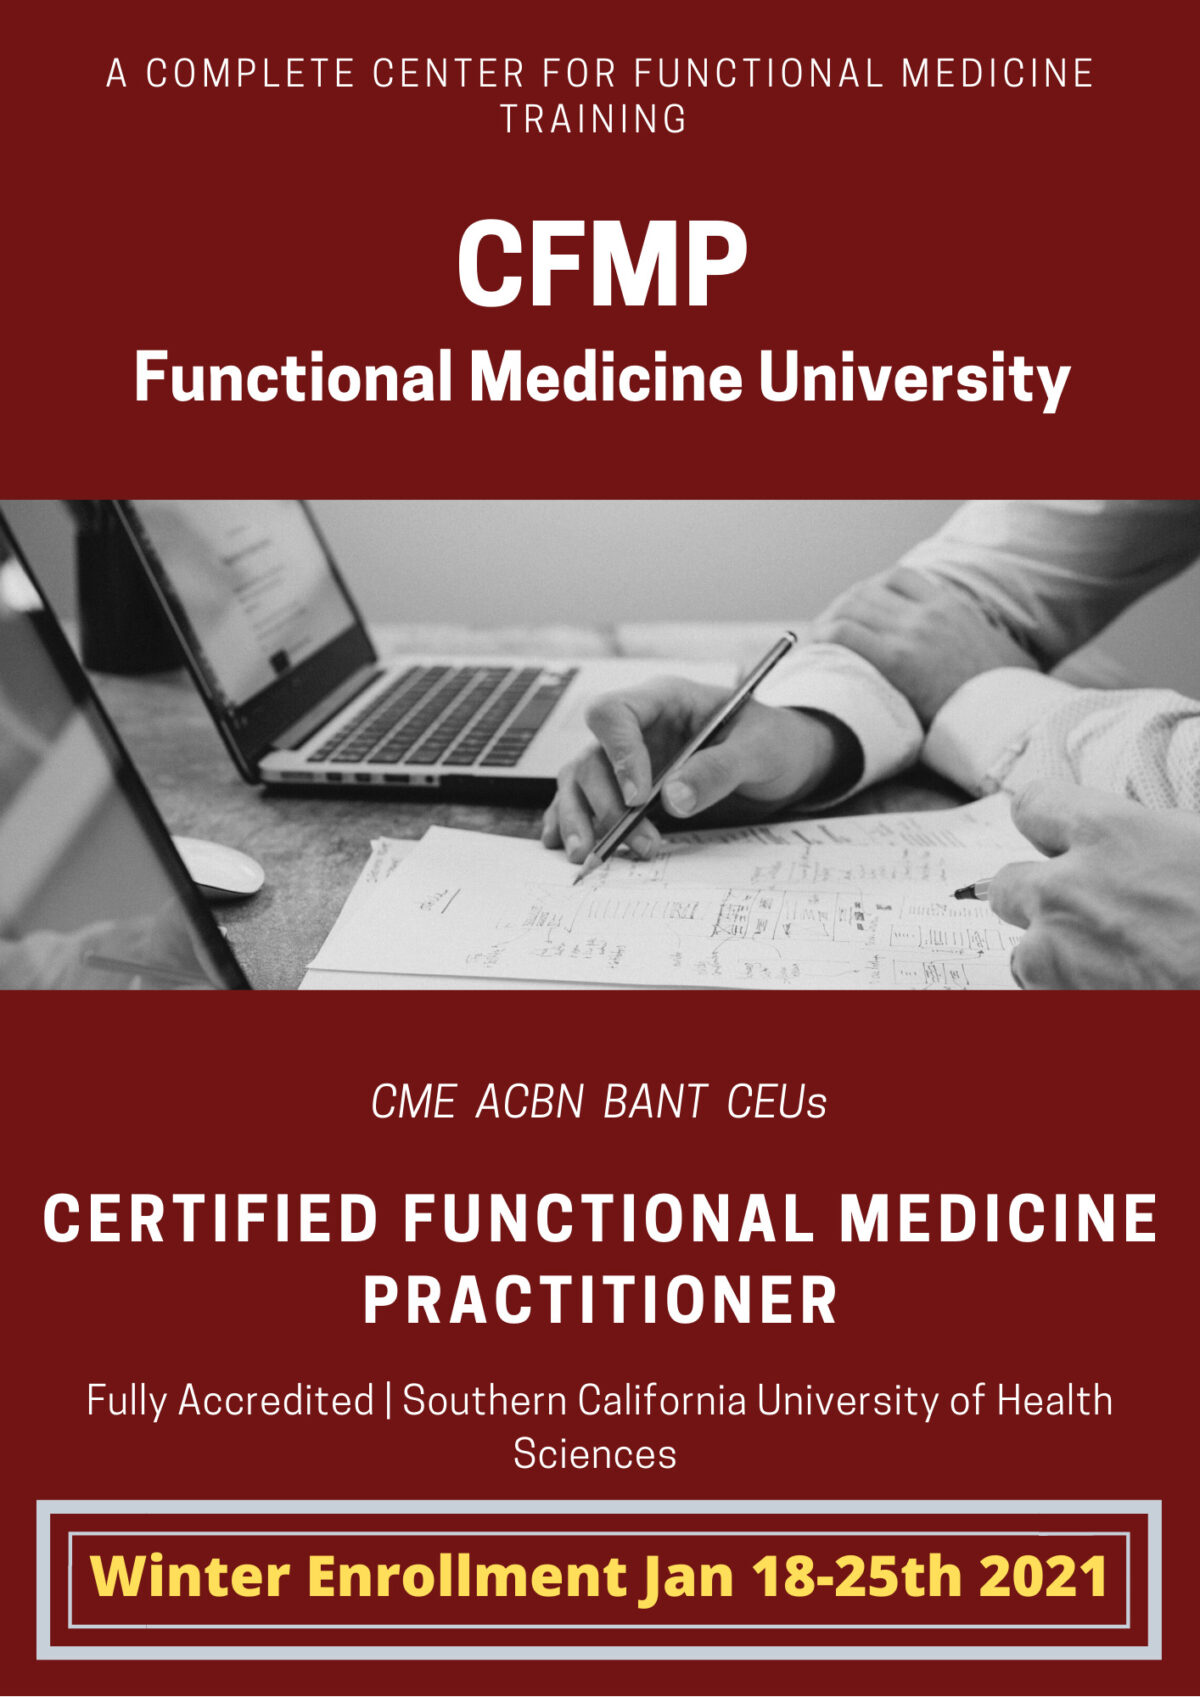 Winter Enrollment for the CFMP Certified Functional Medicine Practitioner Course at FMU